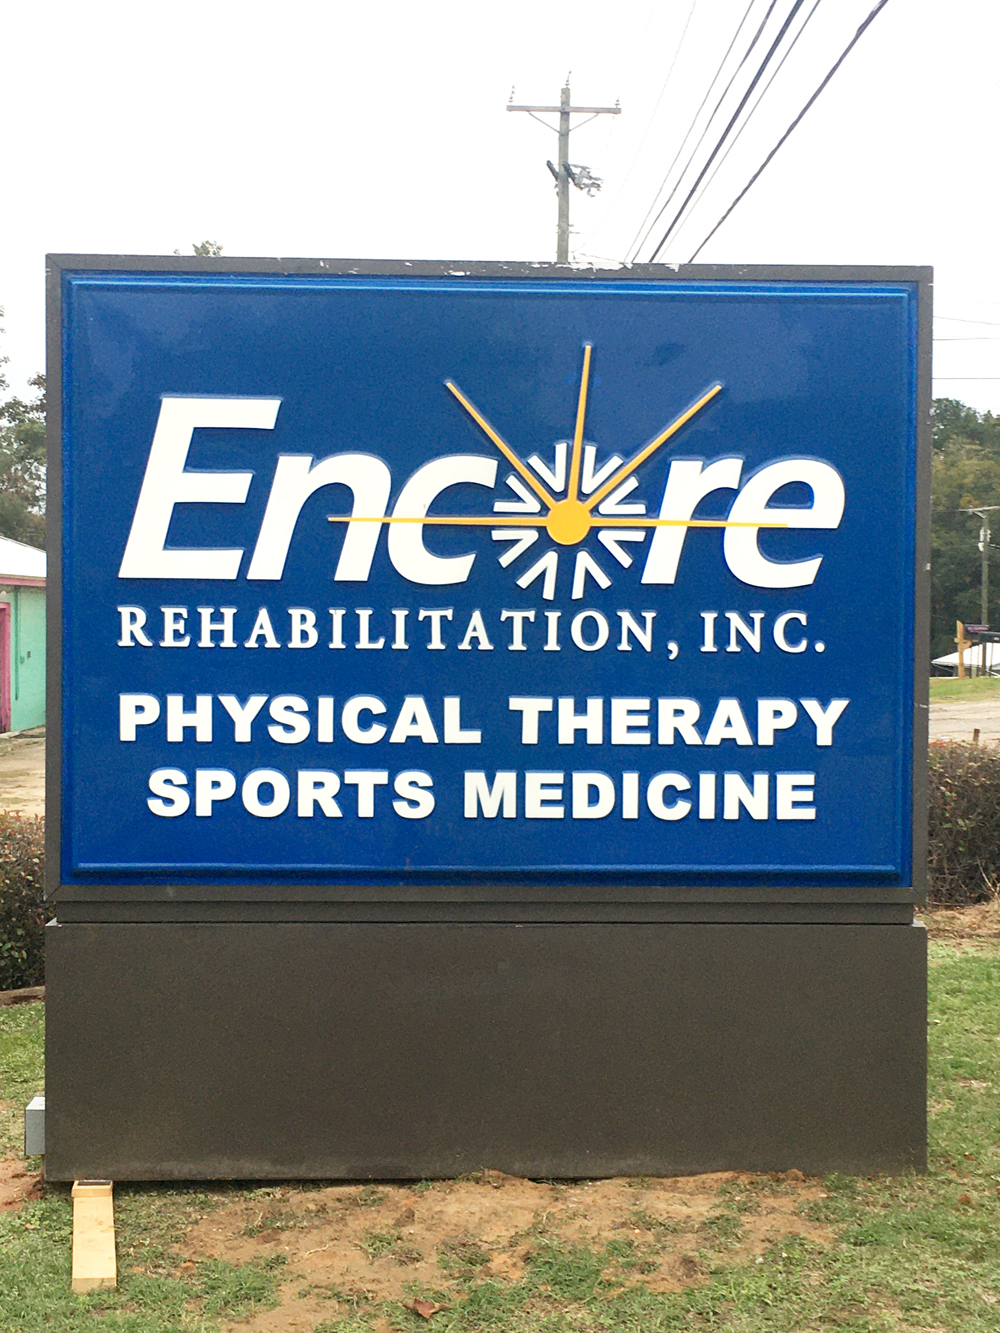 #EncoreRehab Luverne is ready to be your Physical Therapy Provider! #weLOVEtoseeyoumove